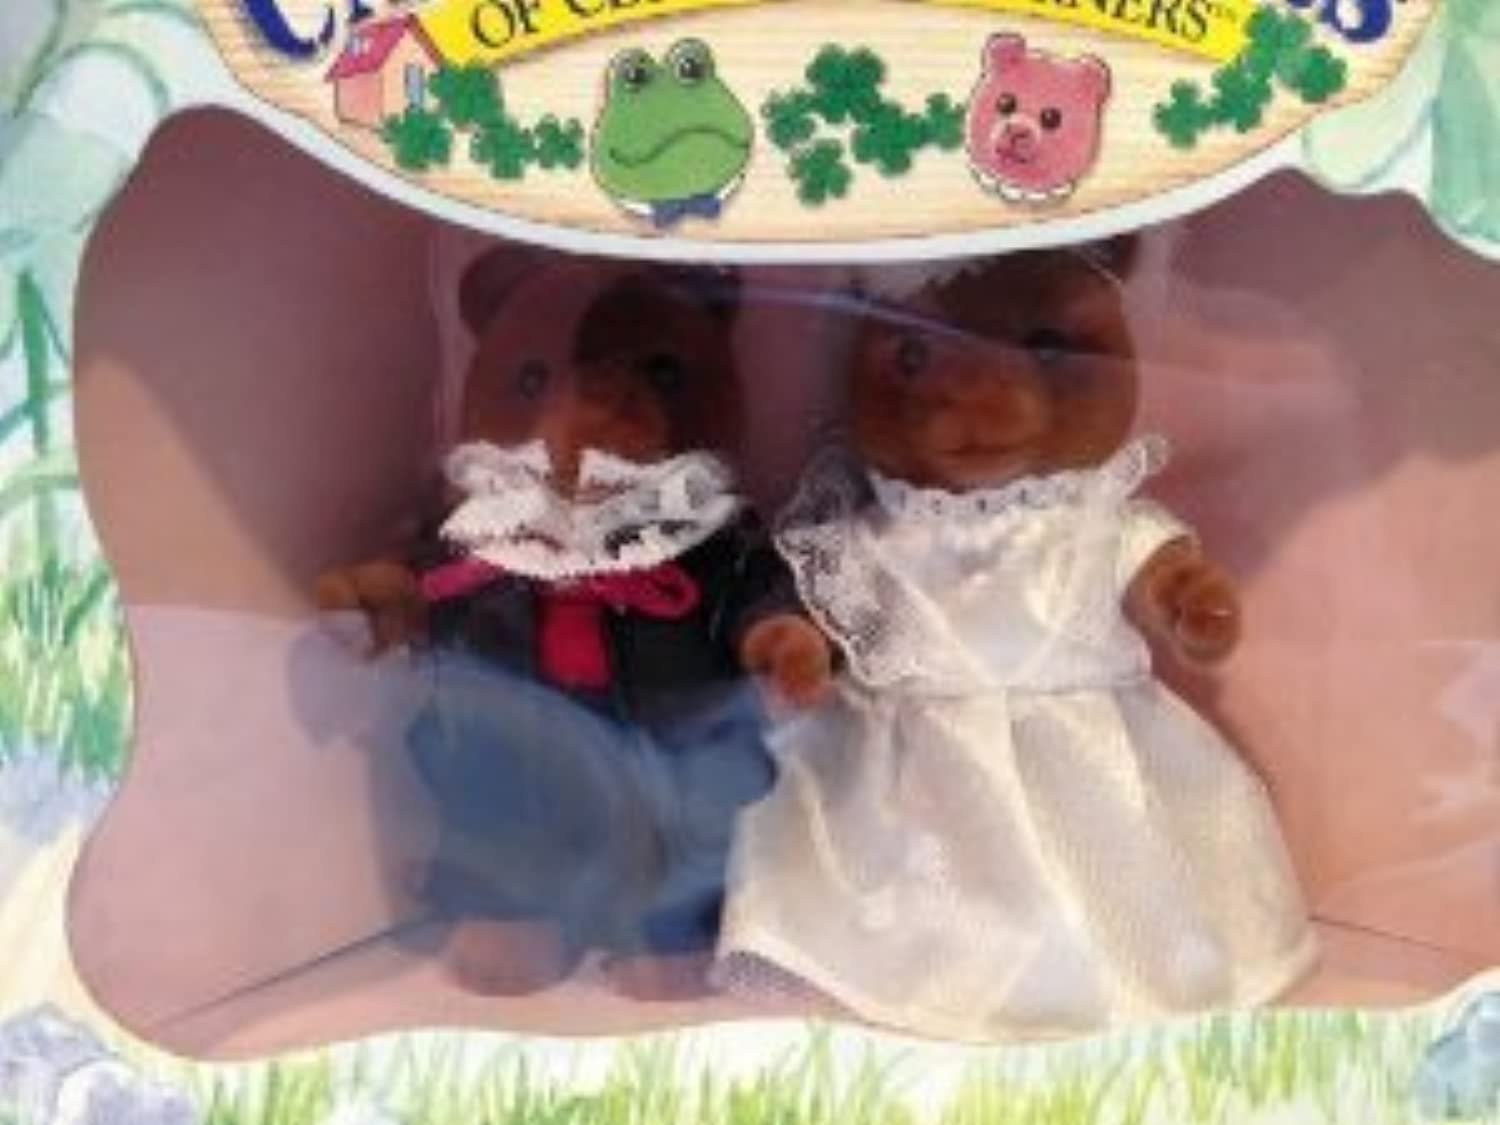 Calico Critters Marmalade Bear Wedding Set Retired 1993 #2835(並行輸入)